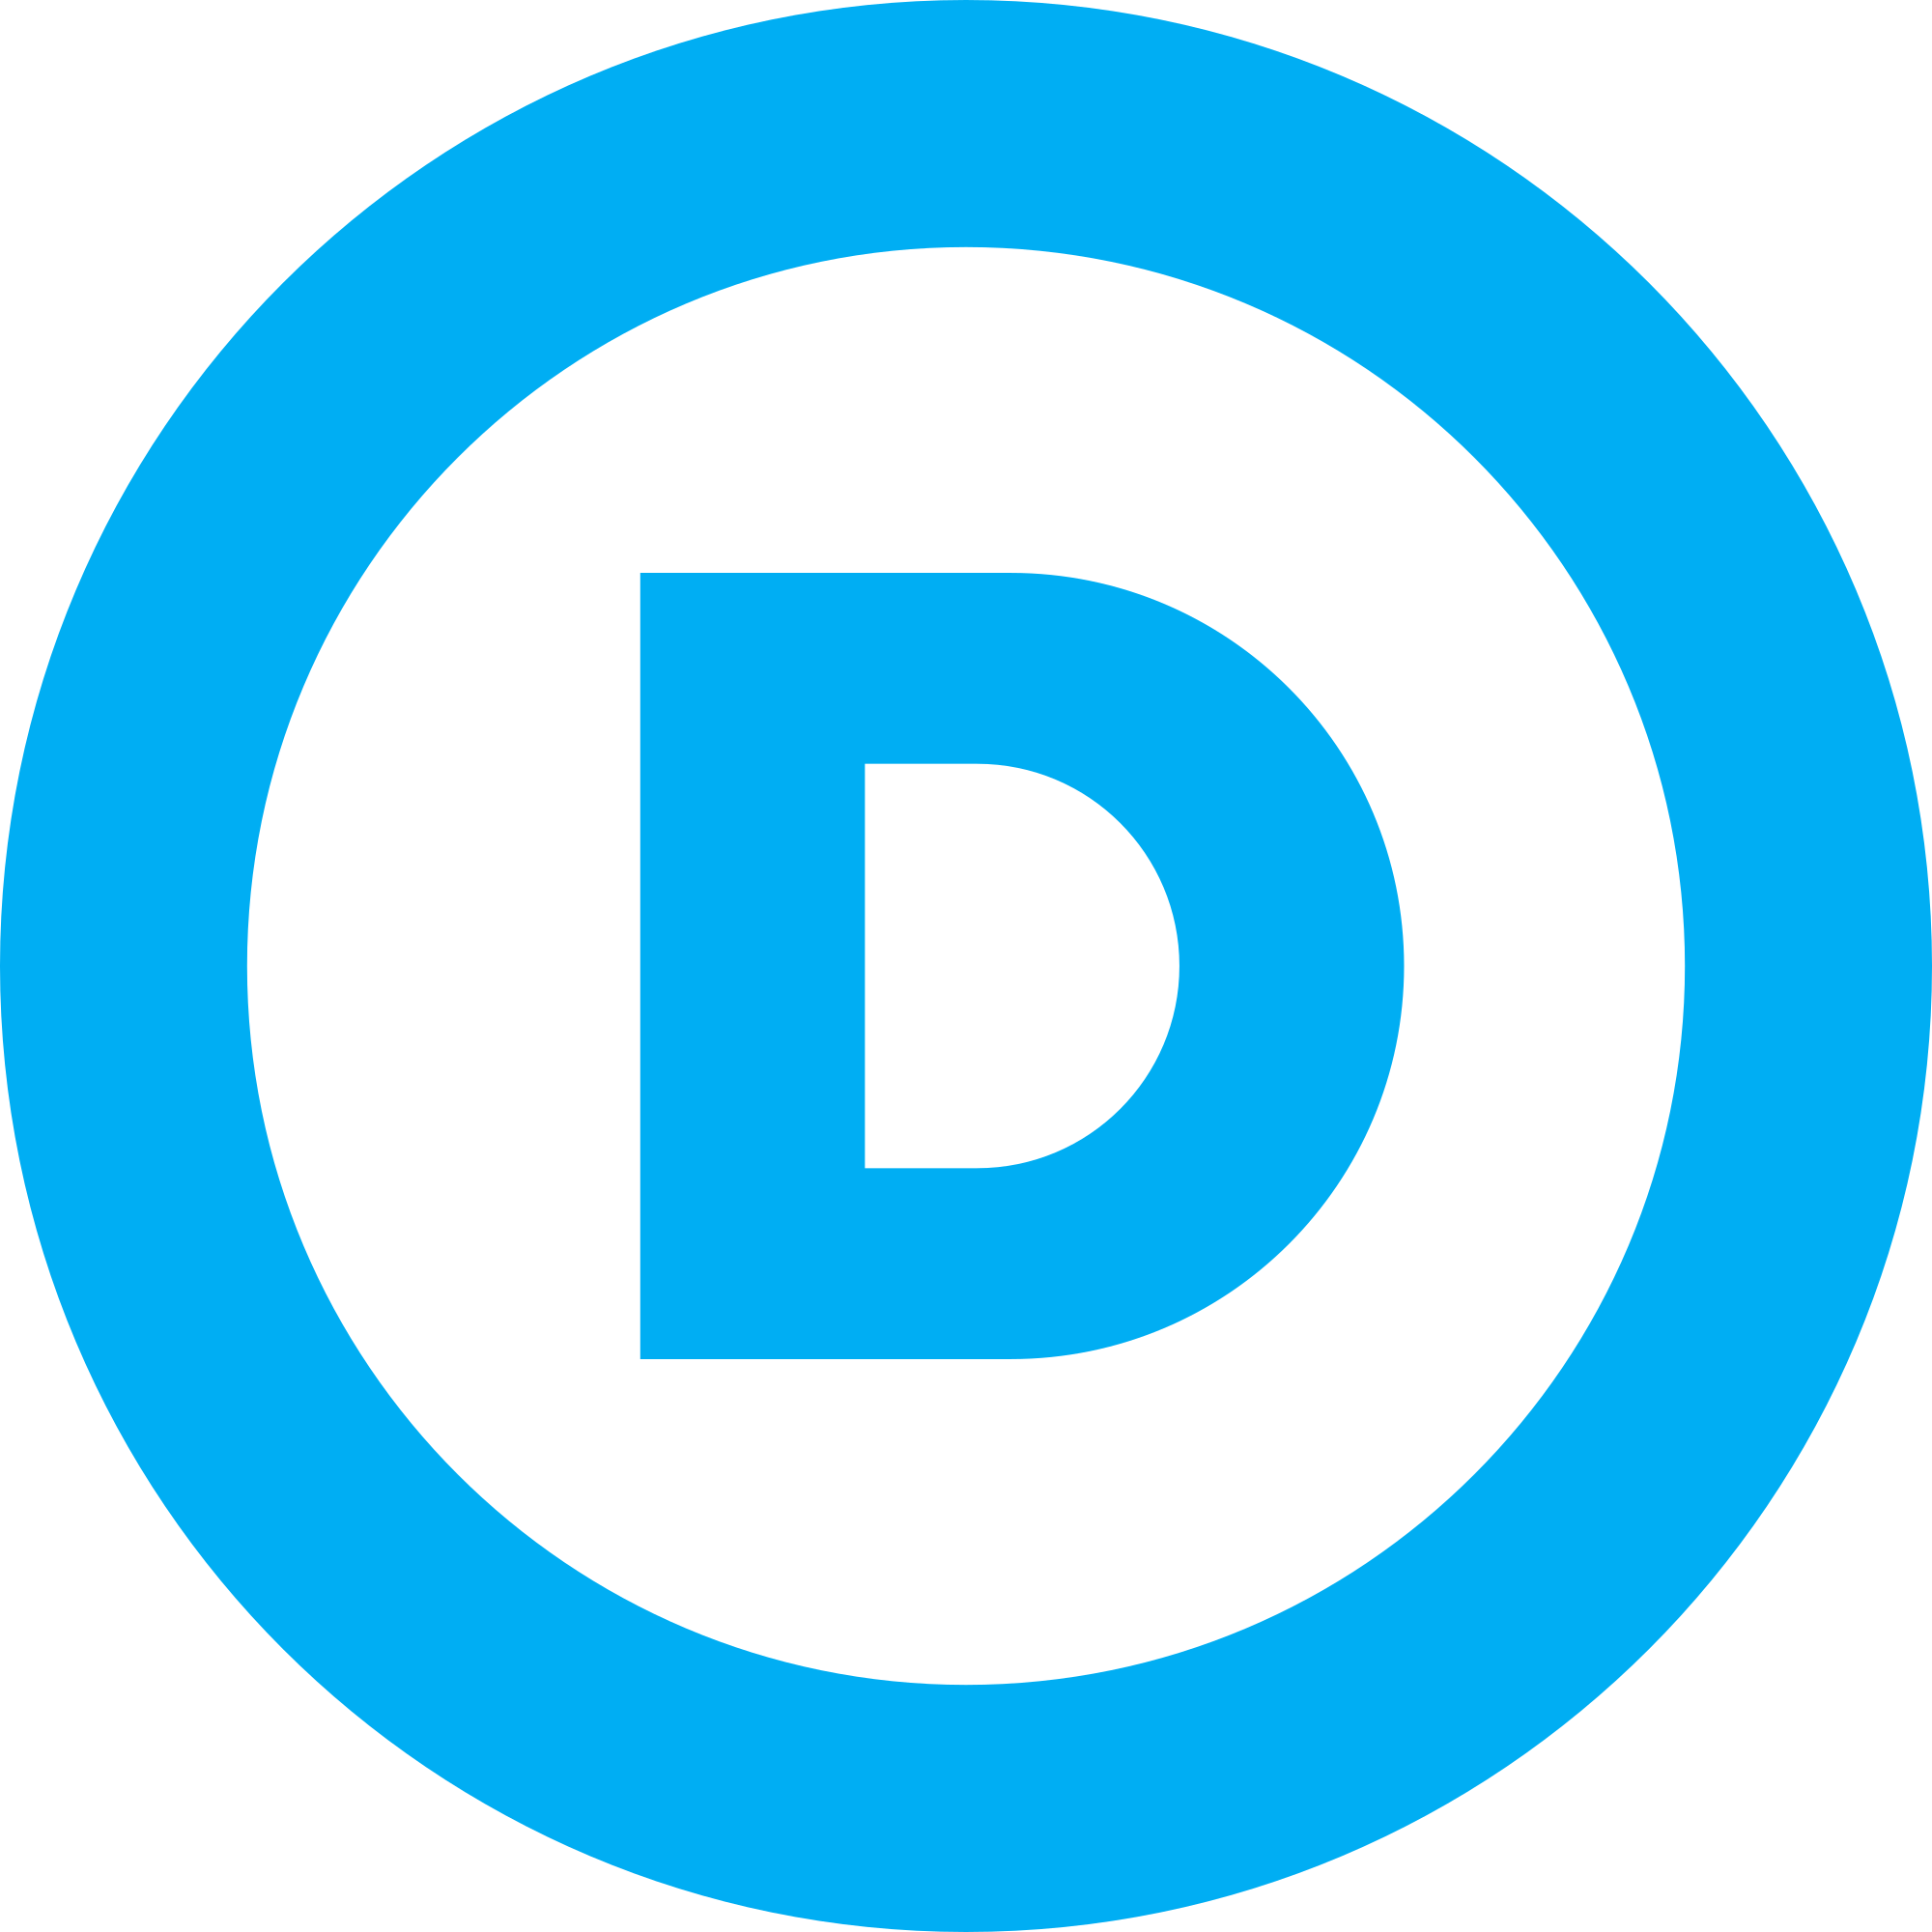 Democratic party united states. Voting clipart jacksonian democracy